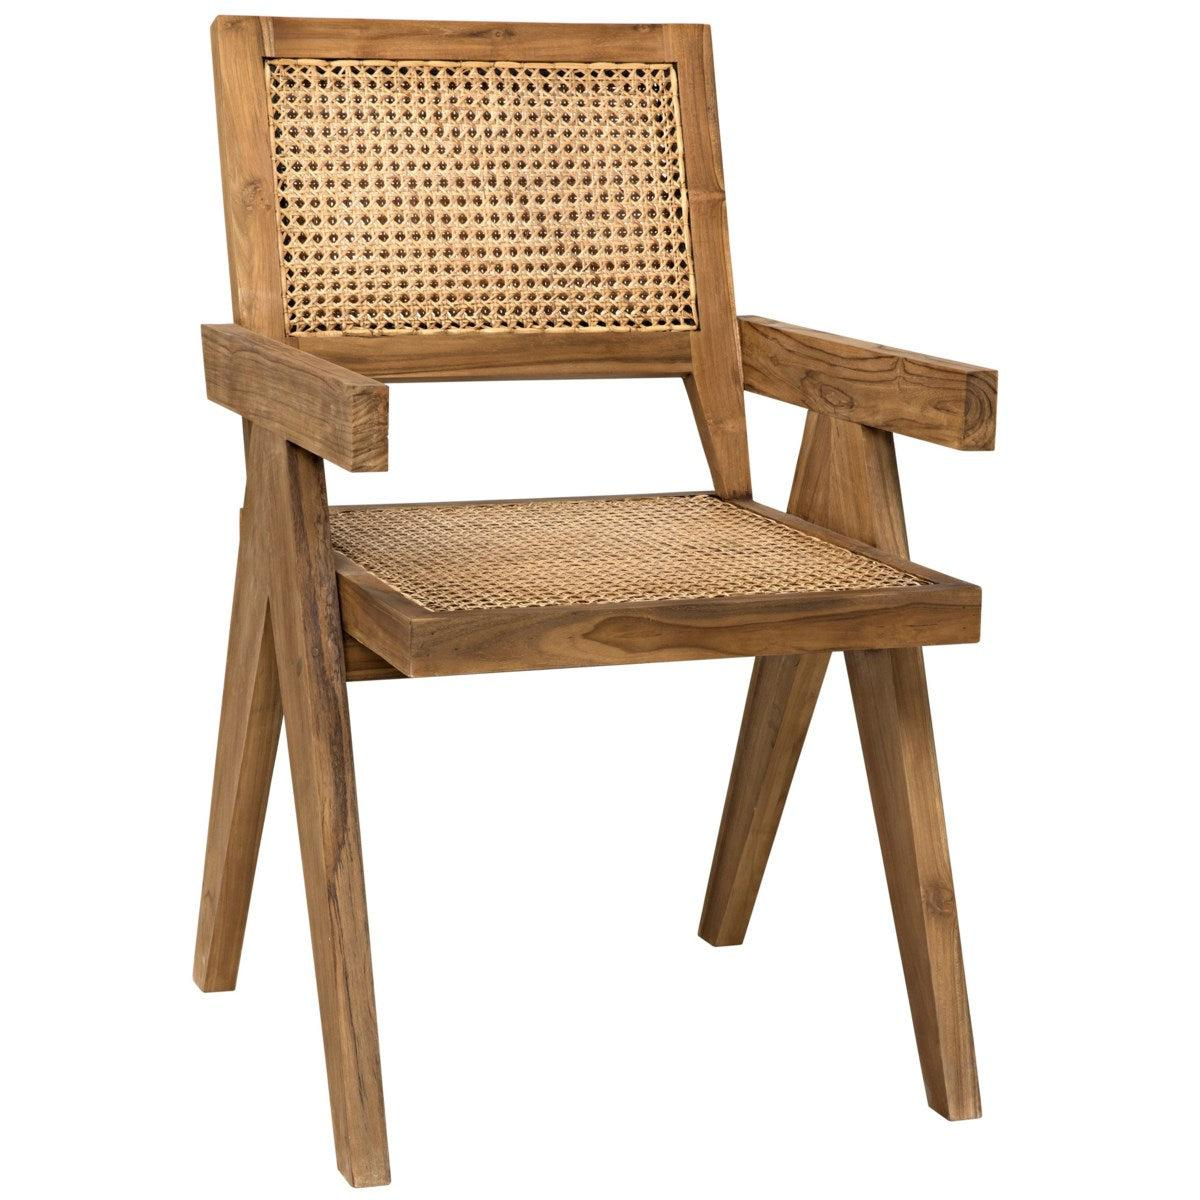 Noir Furniture Jude Chair, Teak with Caning-Noir Furniture-Blue Hand Home